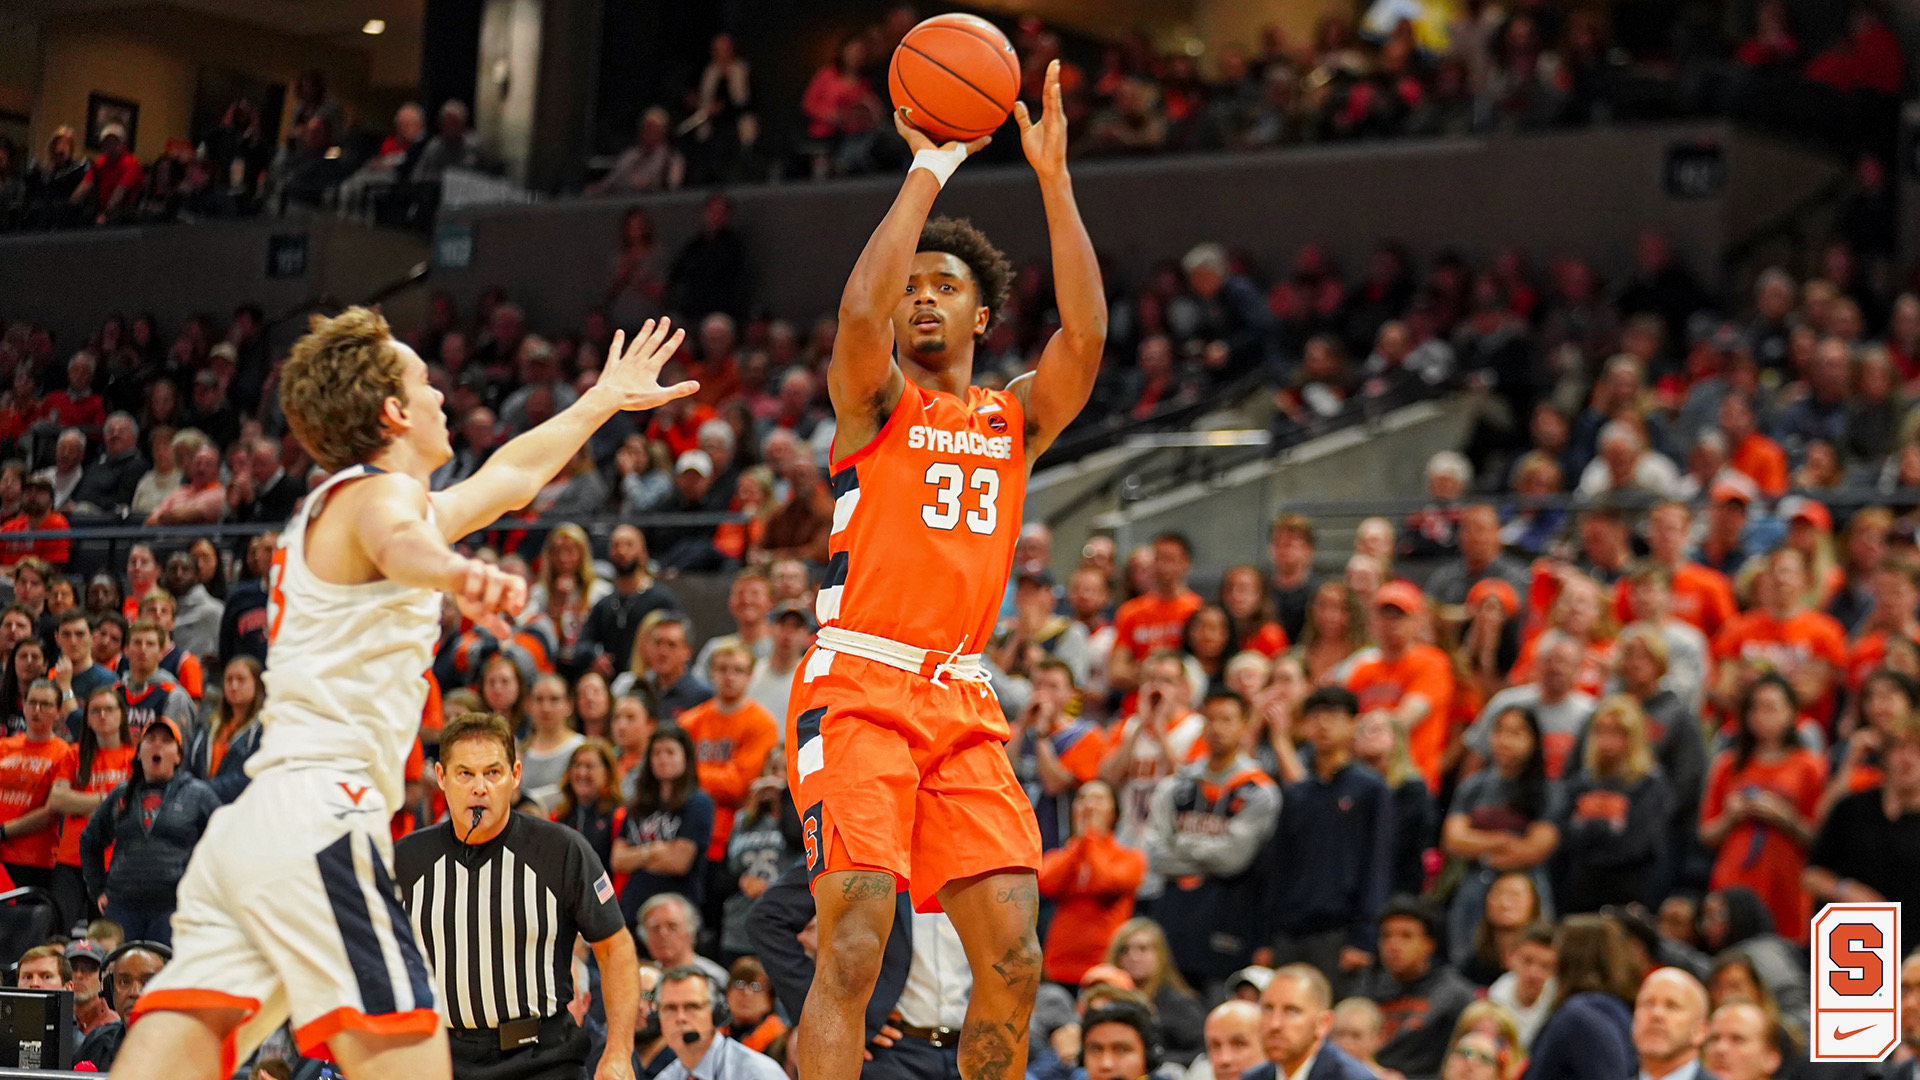 ORANGE GAME DAY: Syracuse takes on Virginia in Charlottesville today (preview & info)